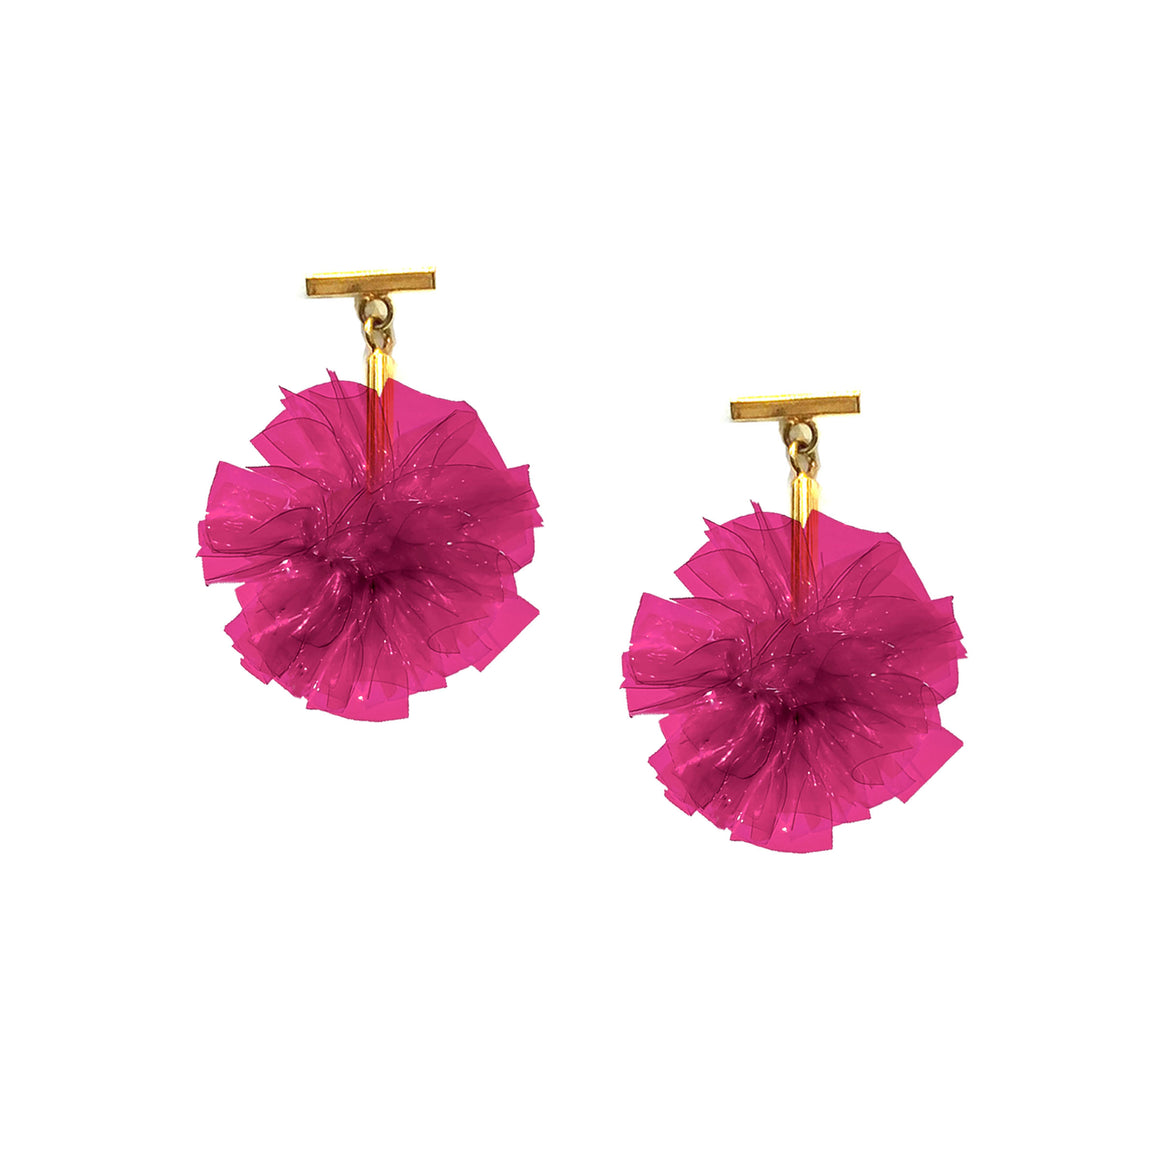 "Fuchsia 1"" Vinyl Pom Pom T Stud Earrings, earring, Tuleste, Tuleste"